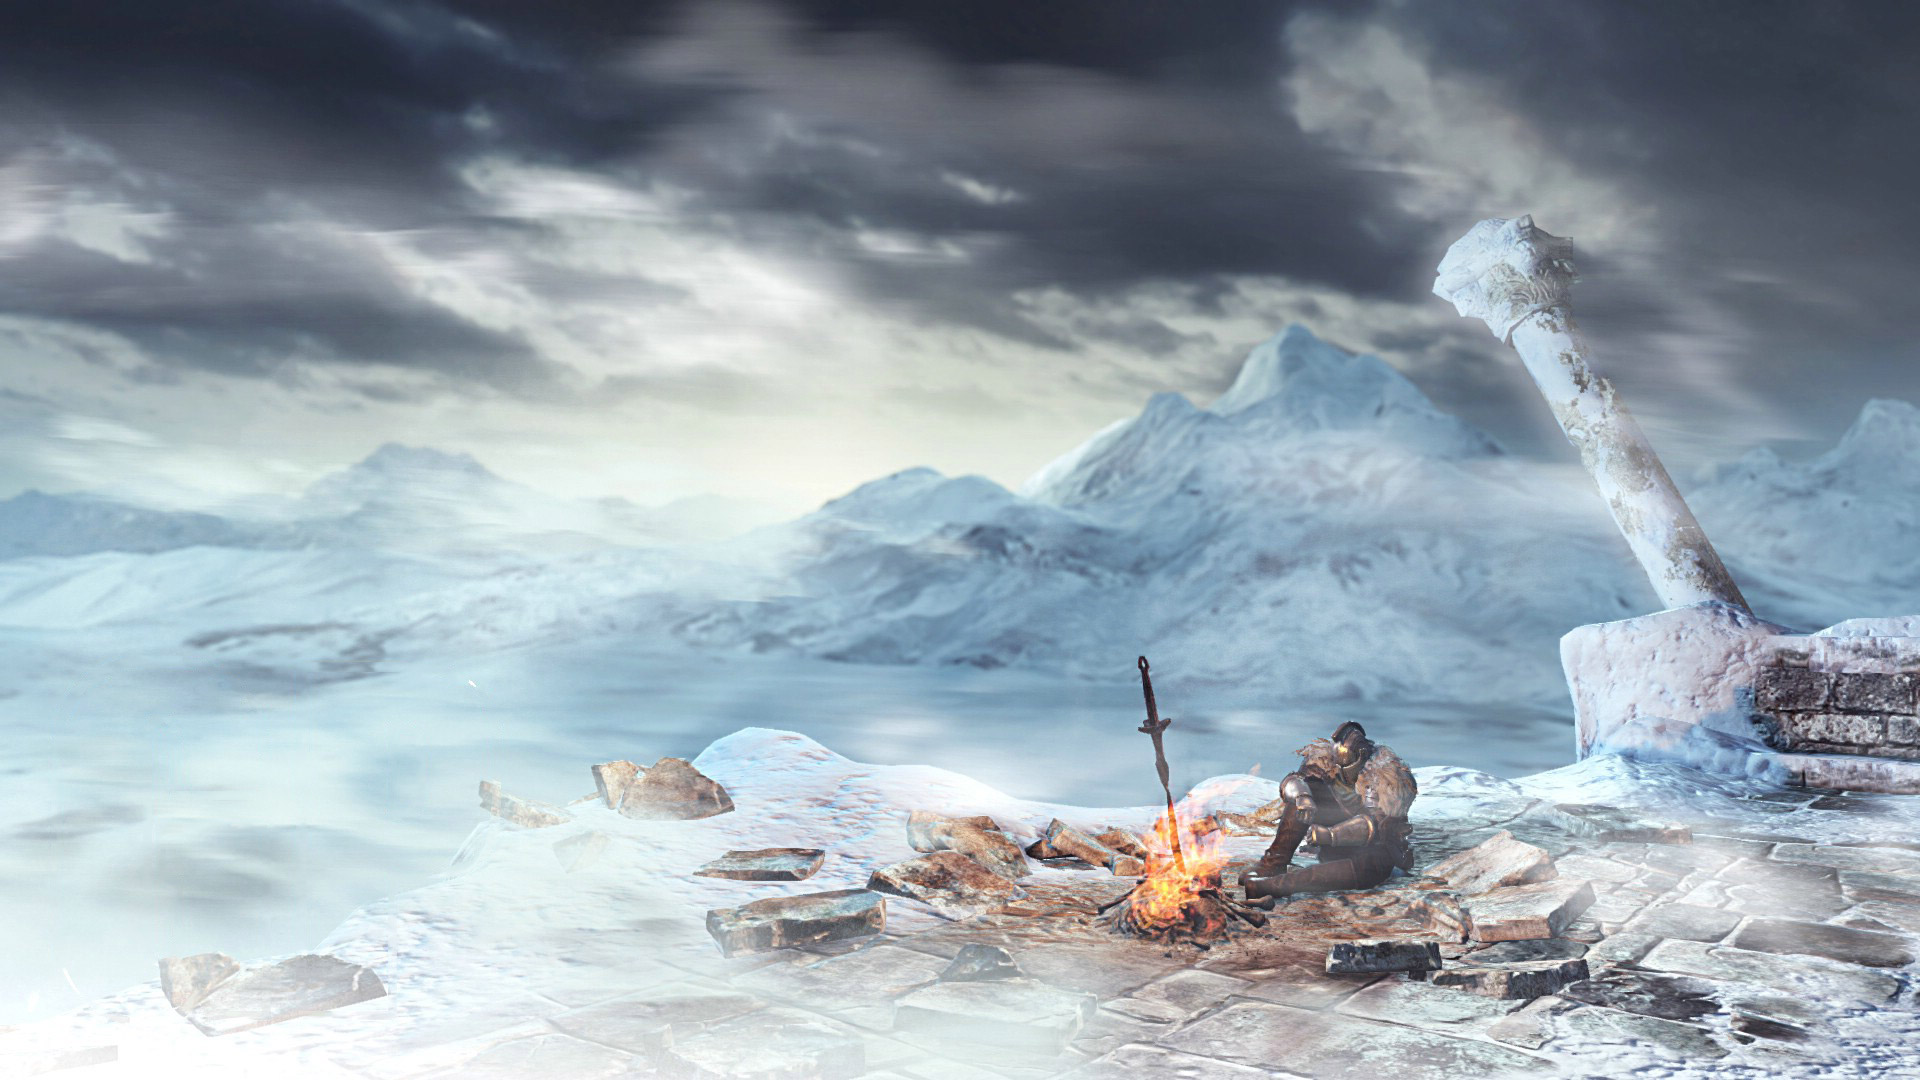 Dark Souls II Wallpaper in 1920x1080